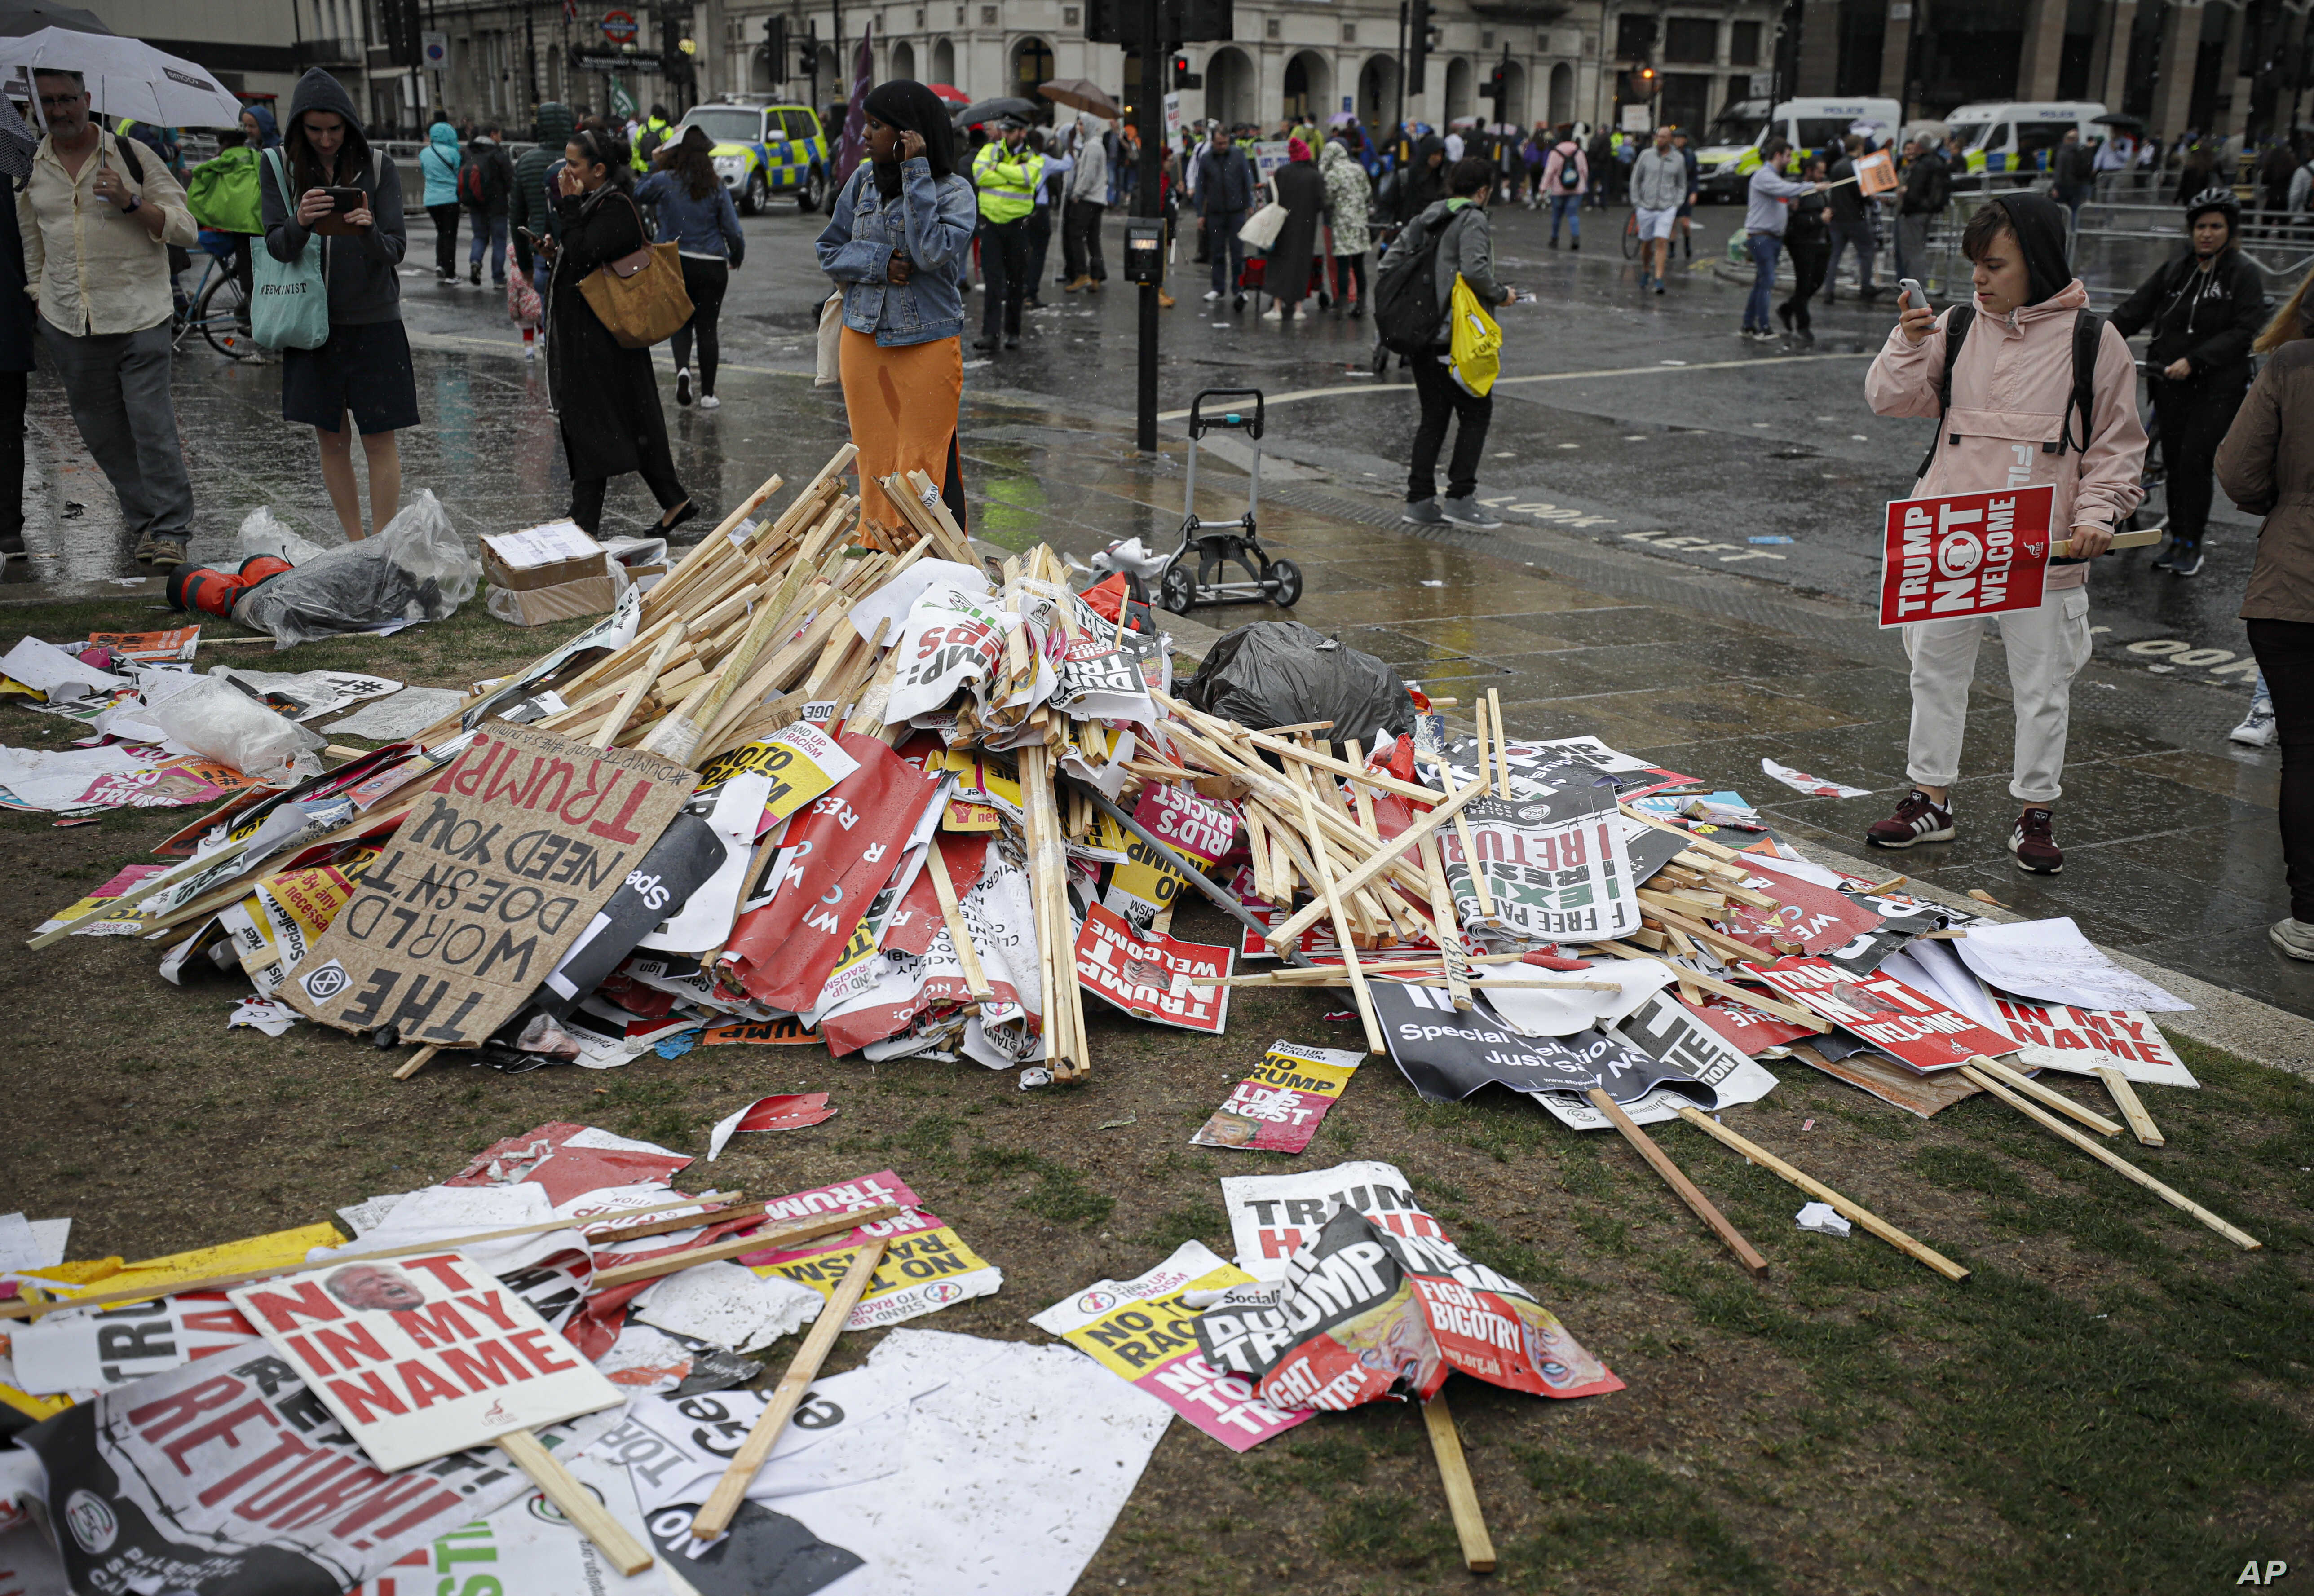 Placards showing anti-Trump messages lie on the ground, in central London, near the end of a protest against the state visit of President Donald Trump, June 4, 2019.